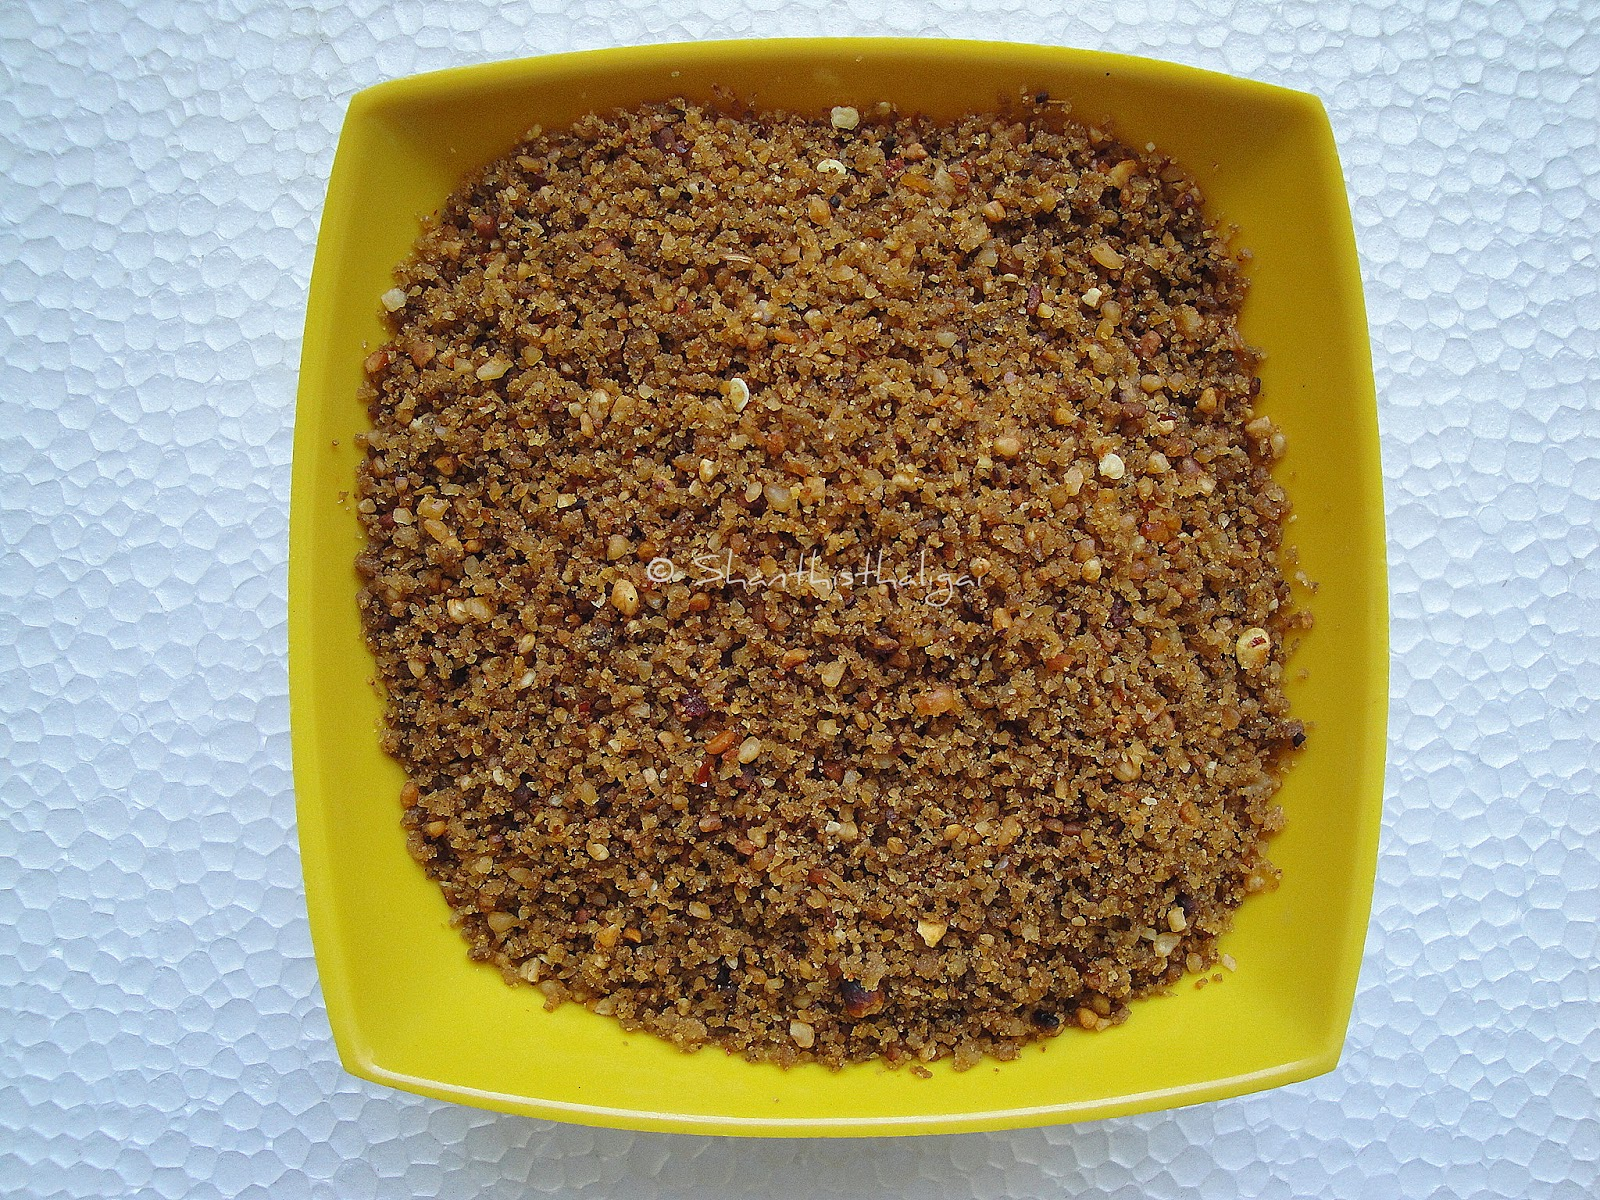 VAZHAIKKAI PODI,RAW BANANA POWDER, RAW BANANA PODI, HOW TO MAKE VAZHAIKKAI PODI,HOW TO MAKE RAW BANANA POWDER?